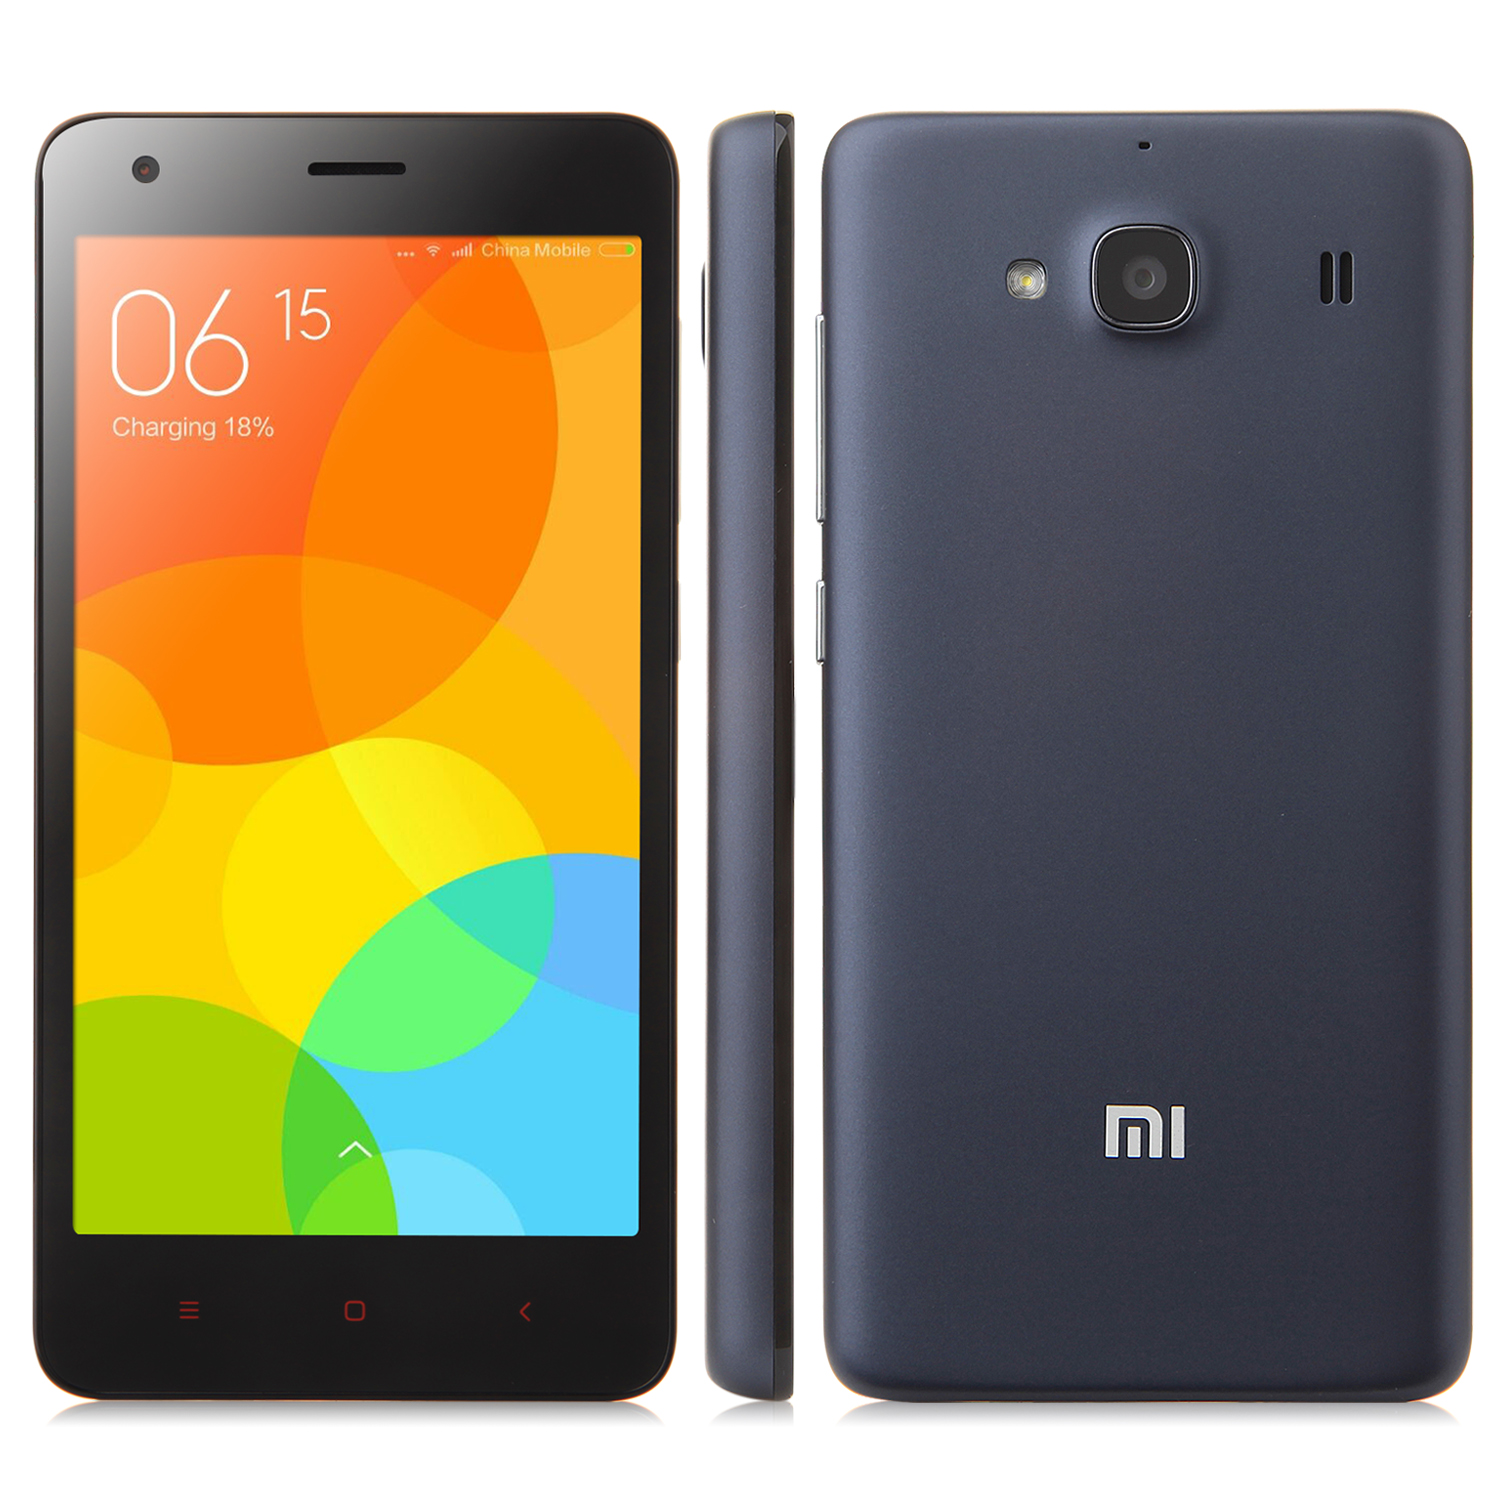 XIAOMI Redmi 2A 4G Smartphone Quad Core 1GB 8GB 4.7 Inch HD Screen 8.0MP GLONASS Black